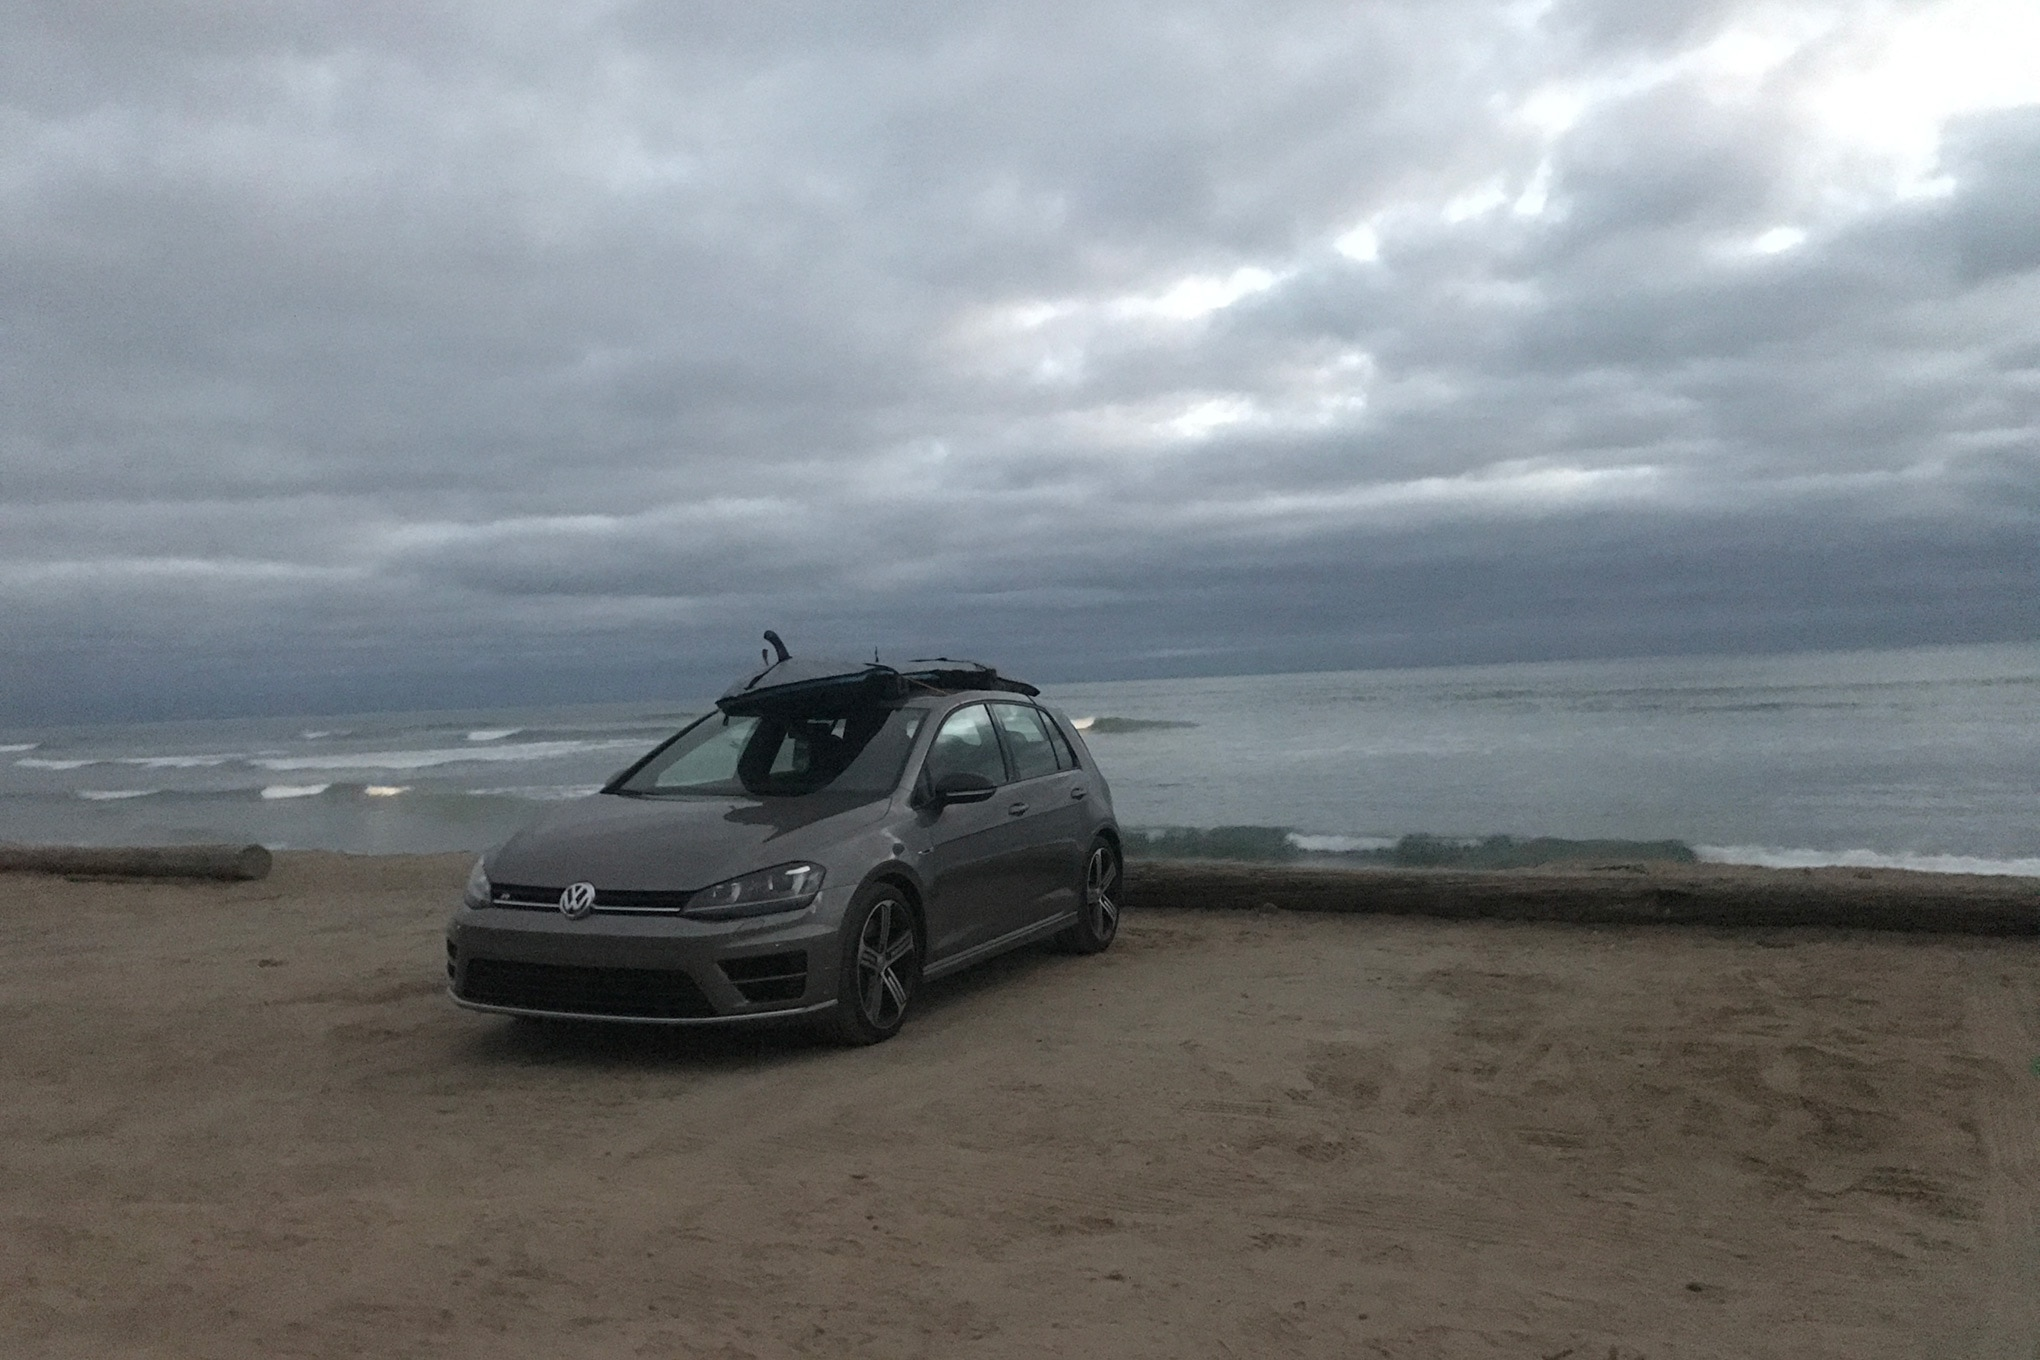 Four Seasons 2016 Volkswagen Golf R On Beach With Surfboard